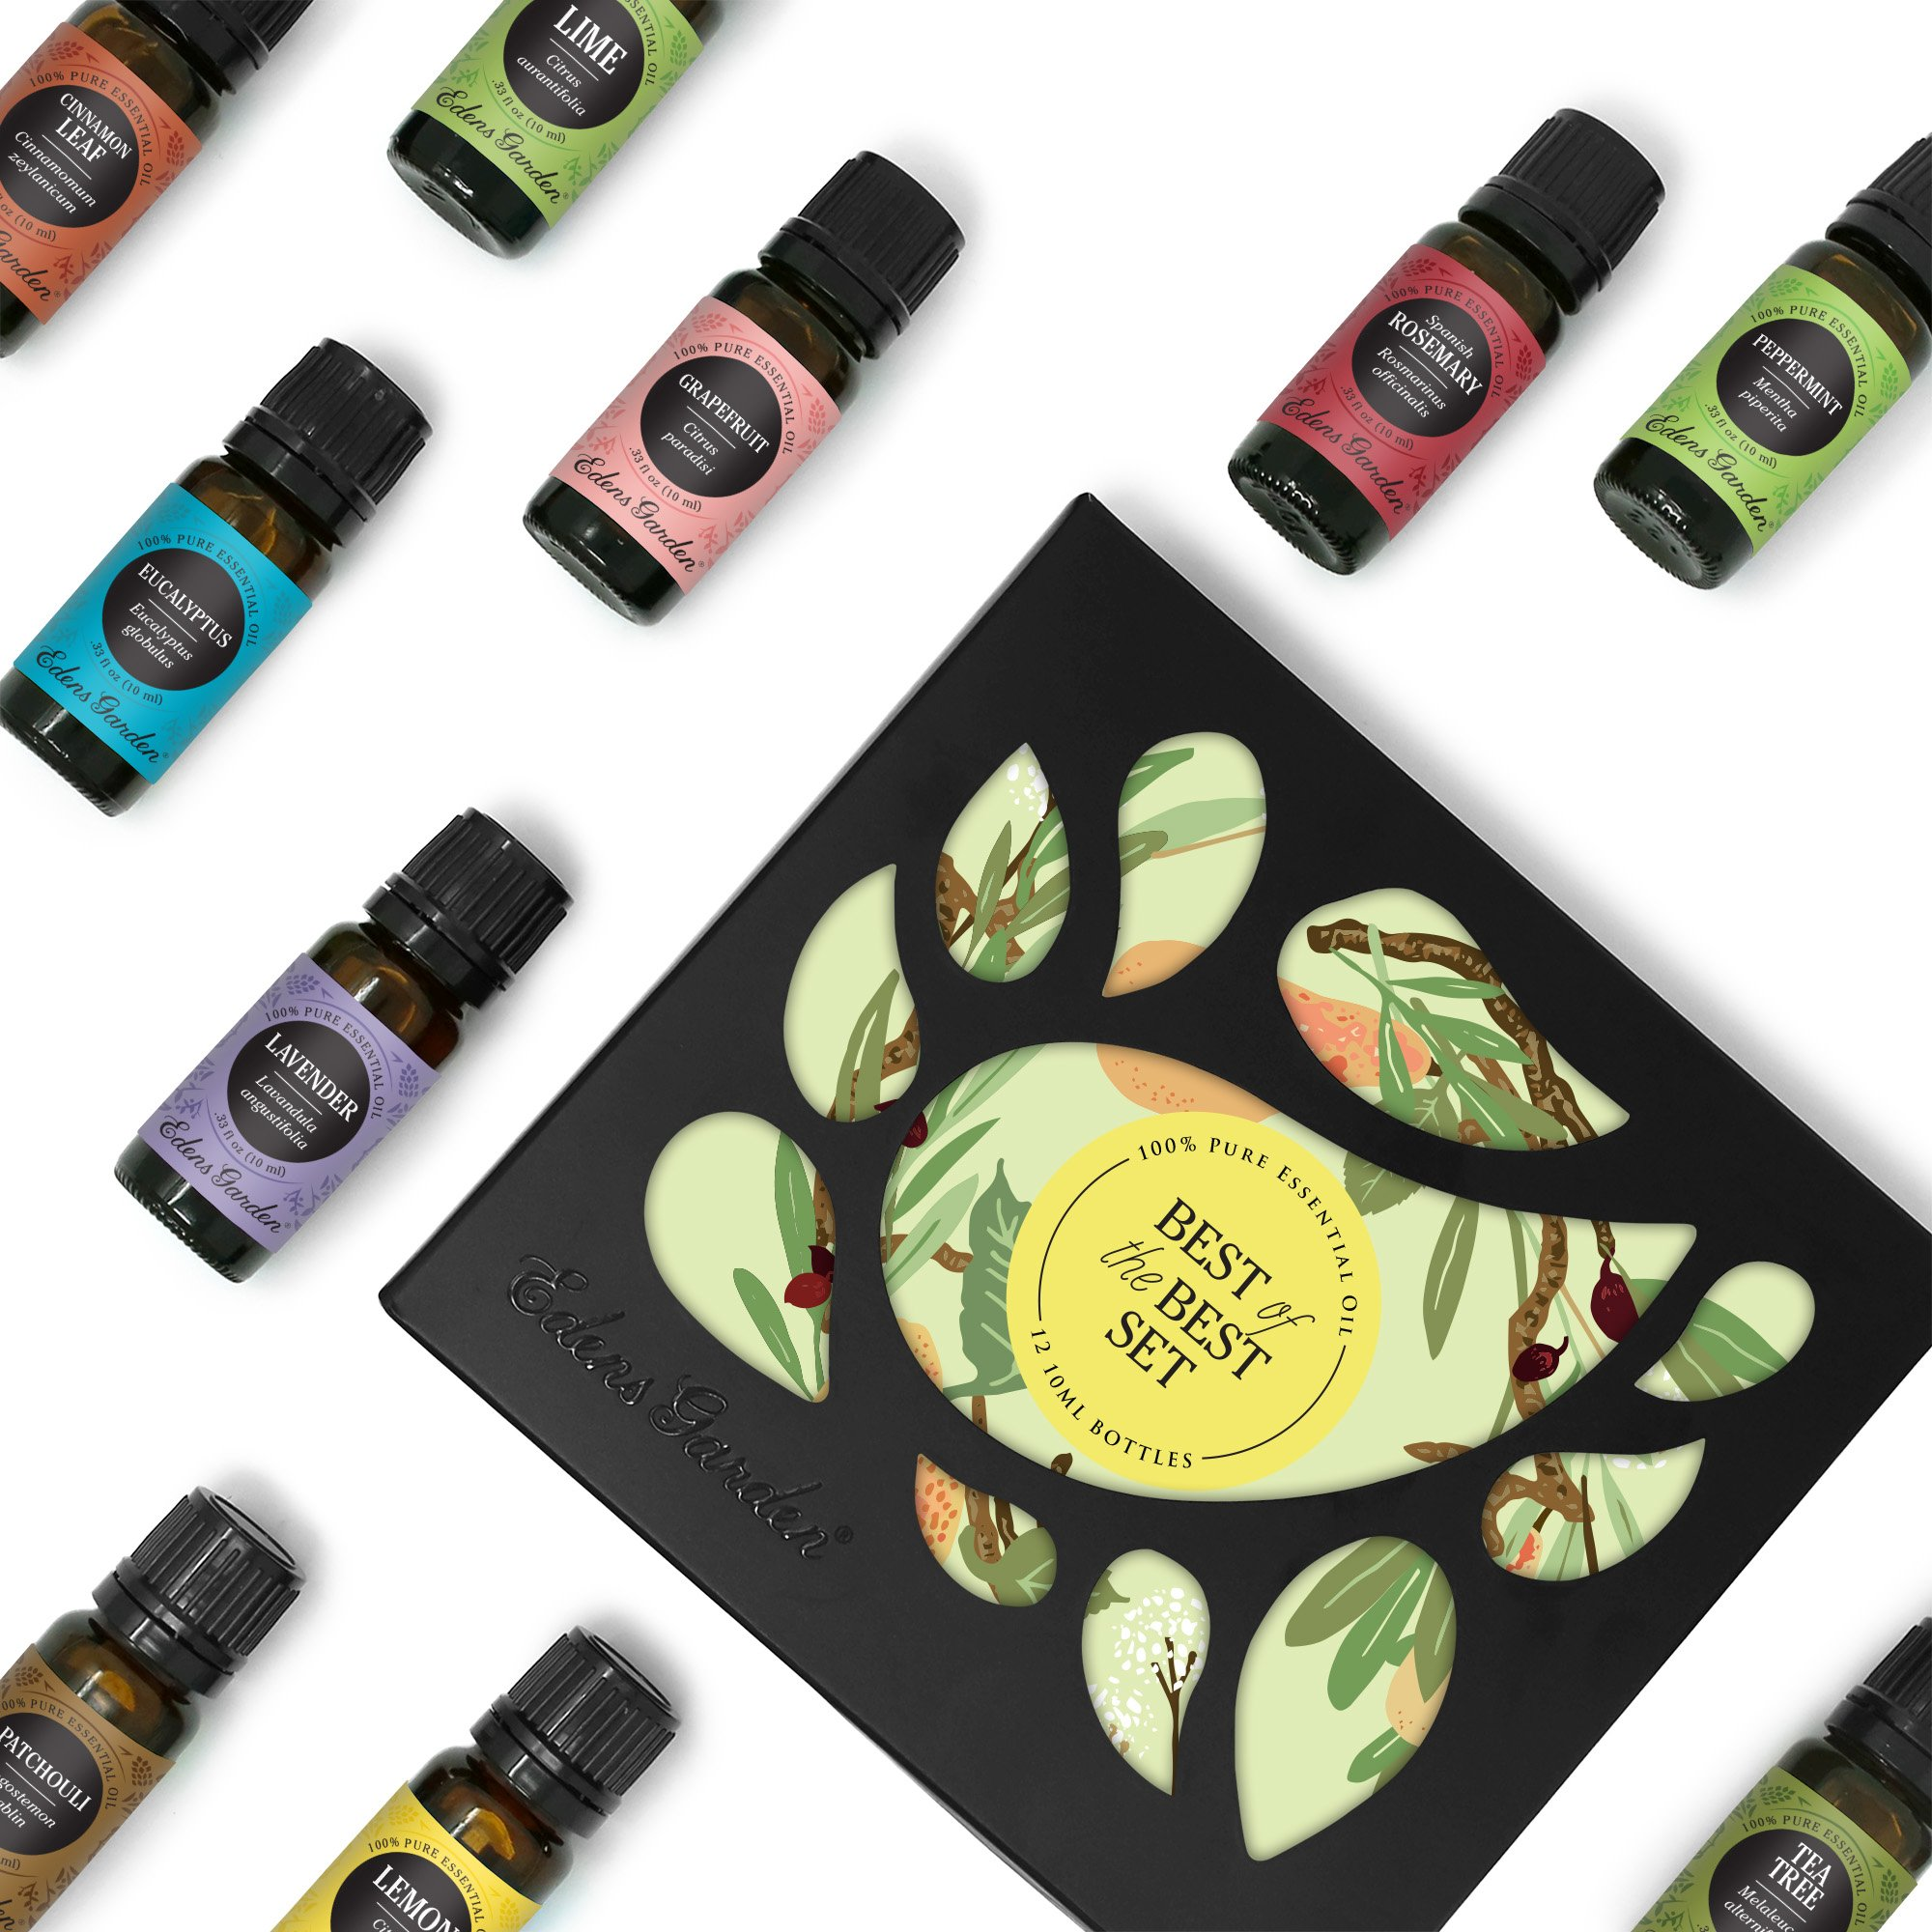 Edens Garden Best of the Best 12 Set, Top 100% Pure Essential Oil & Essential Oil Synergy Blend Aromatherapy Kit (Diffuser & Therapeutic Use, For Beginner & Seasoned Aromatherapist), 10 ml by Edens Garden